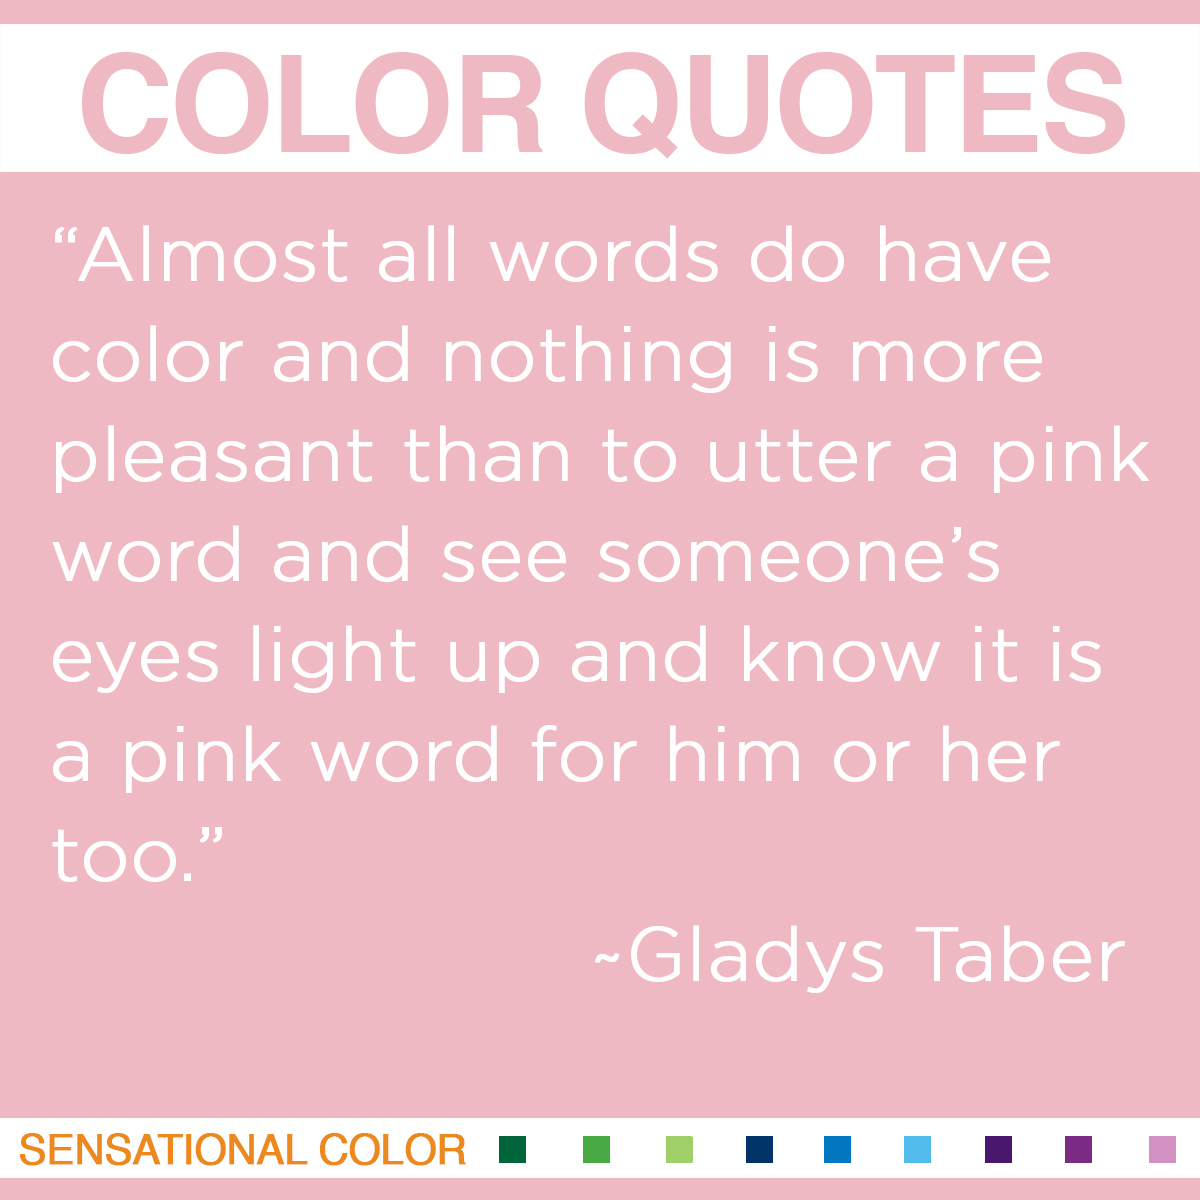 """Quotes About Color - """"Almost all words do have color and nothing is more pleasant than to utter a pink word and see someone's eyes light up and know it is a pink word for him or her too."""" ~ Gladys Taber"""